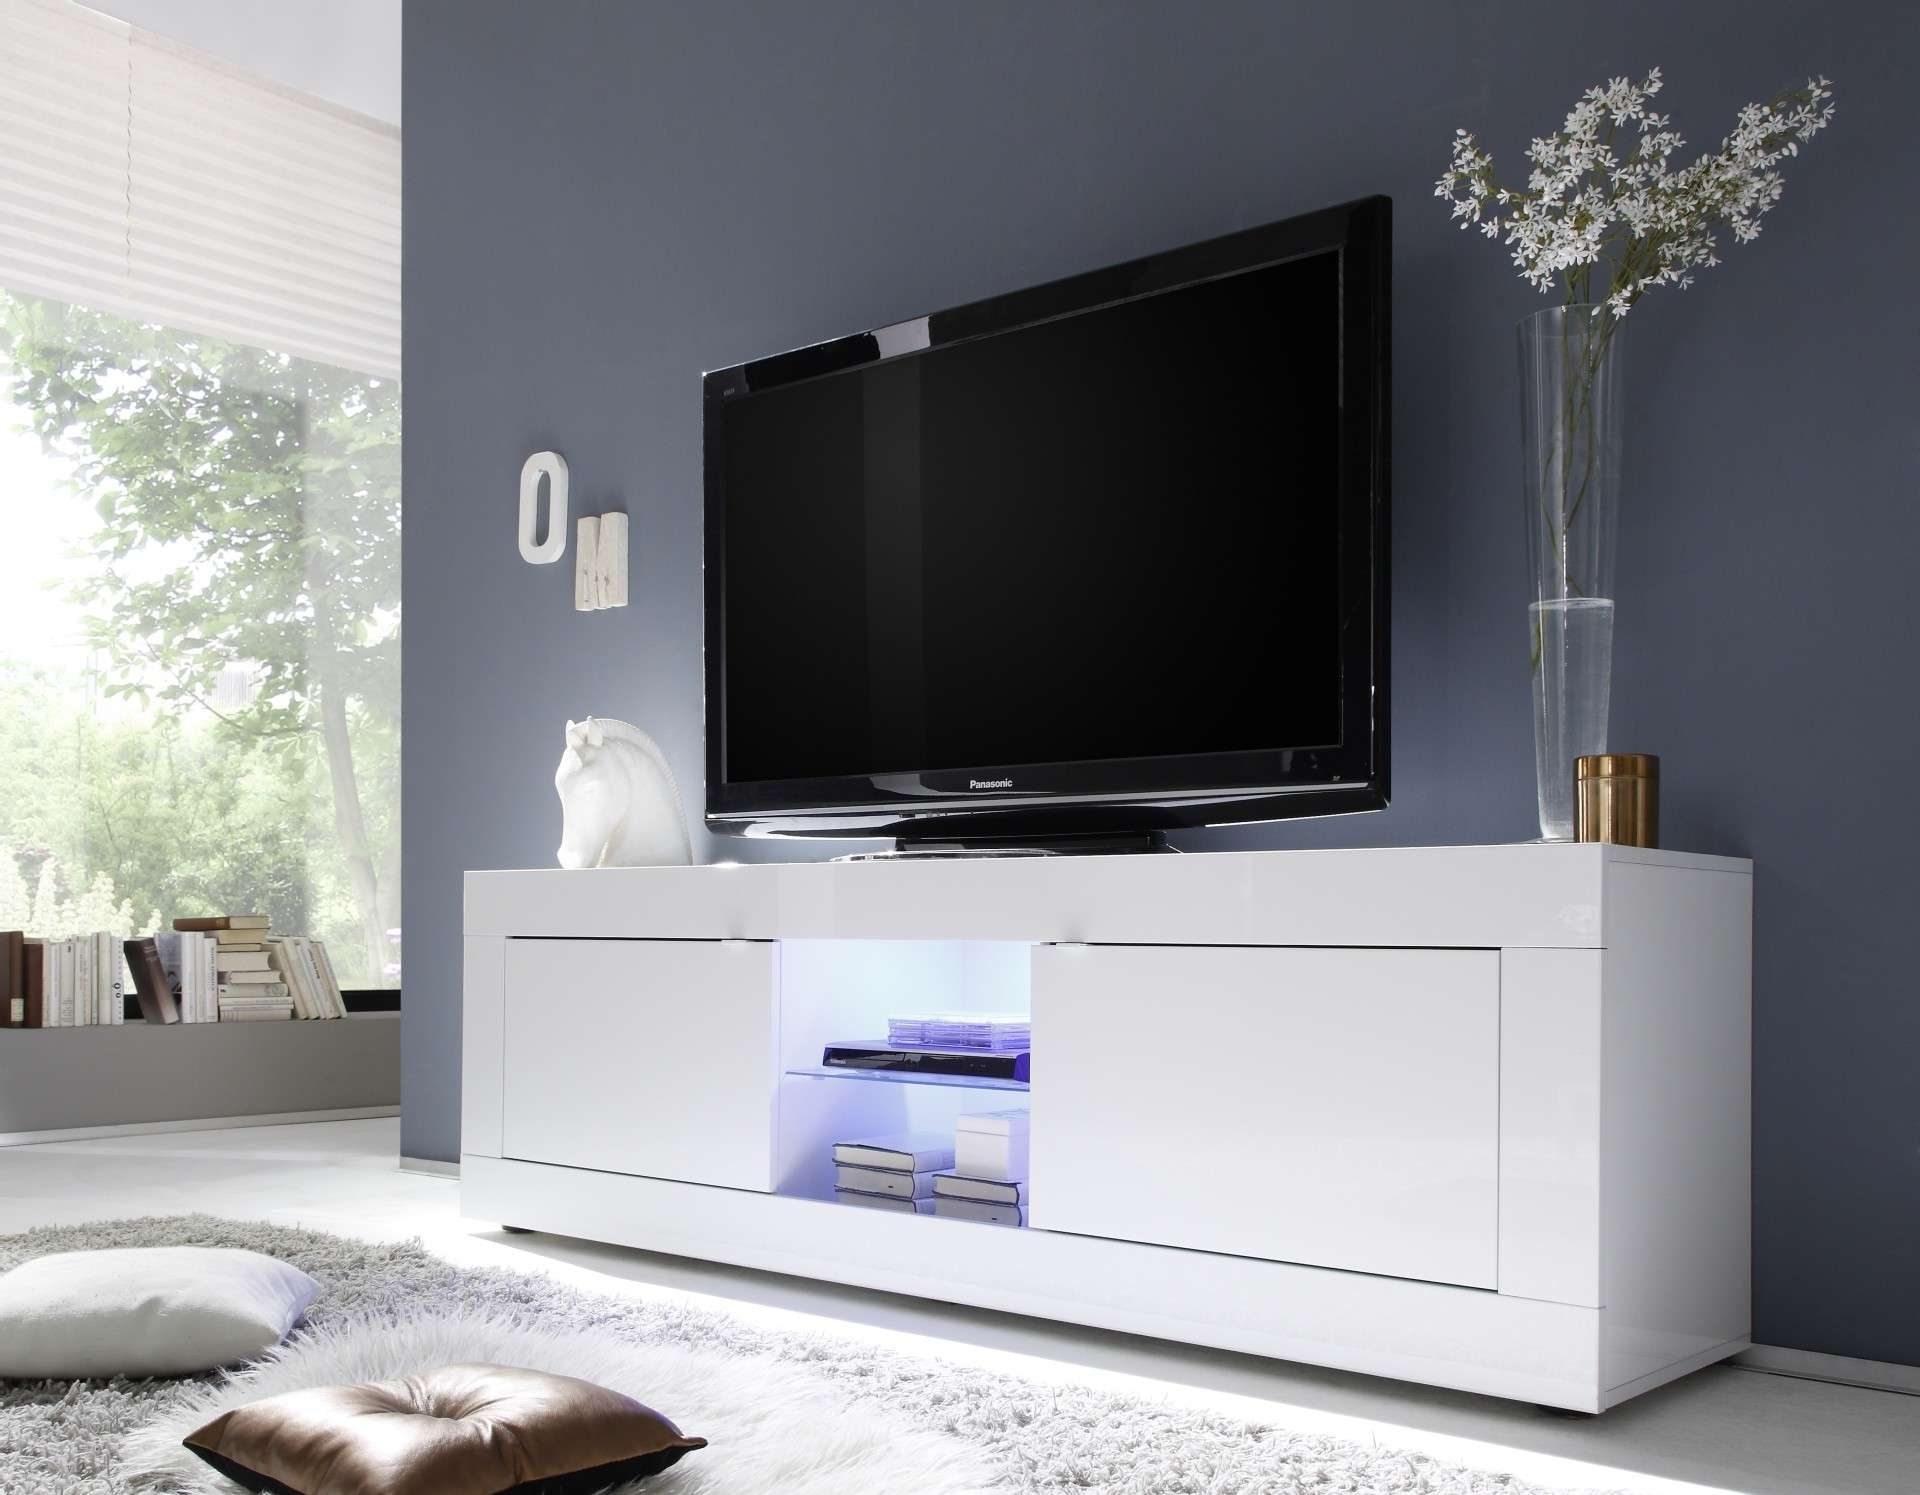 Dolcevita Ii Gloss Tv Stand – Tv Stands – Sena Home Furniture In White High Gloss Tv Stands Unit Cabinet (View 10 of 15)